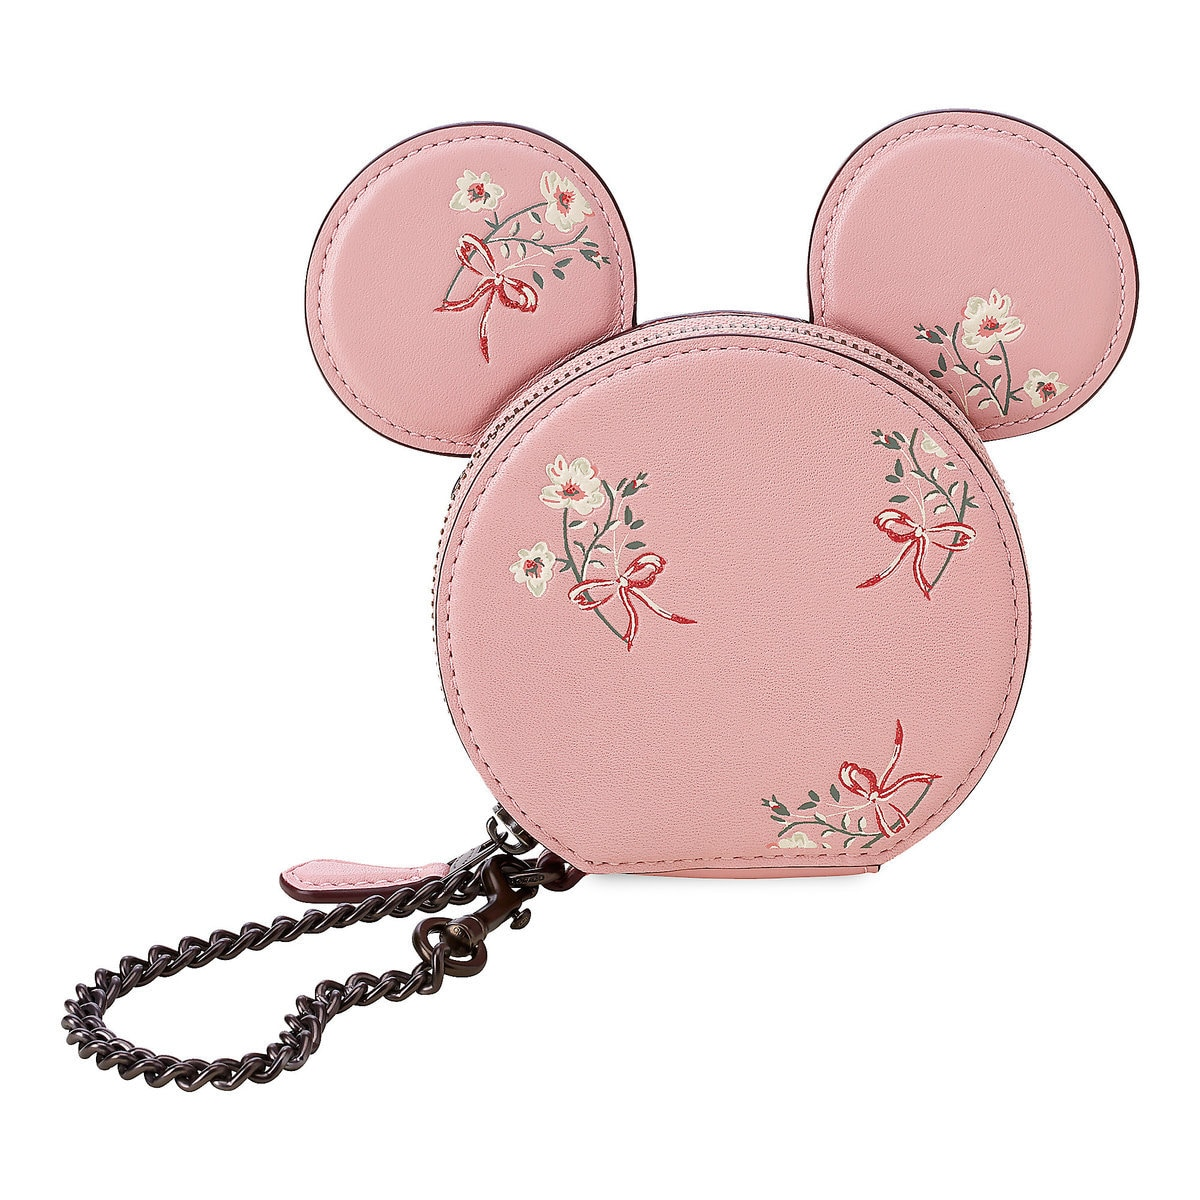 sports shoes 626d3 9c5fe Minnie Mouse Floral Coin Purse by COACH - Pink